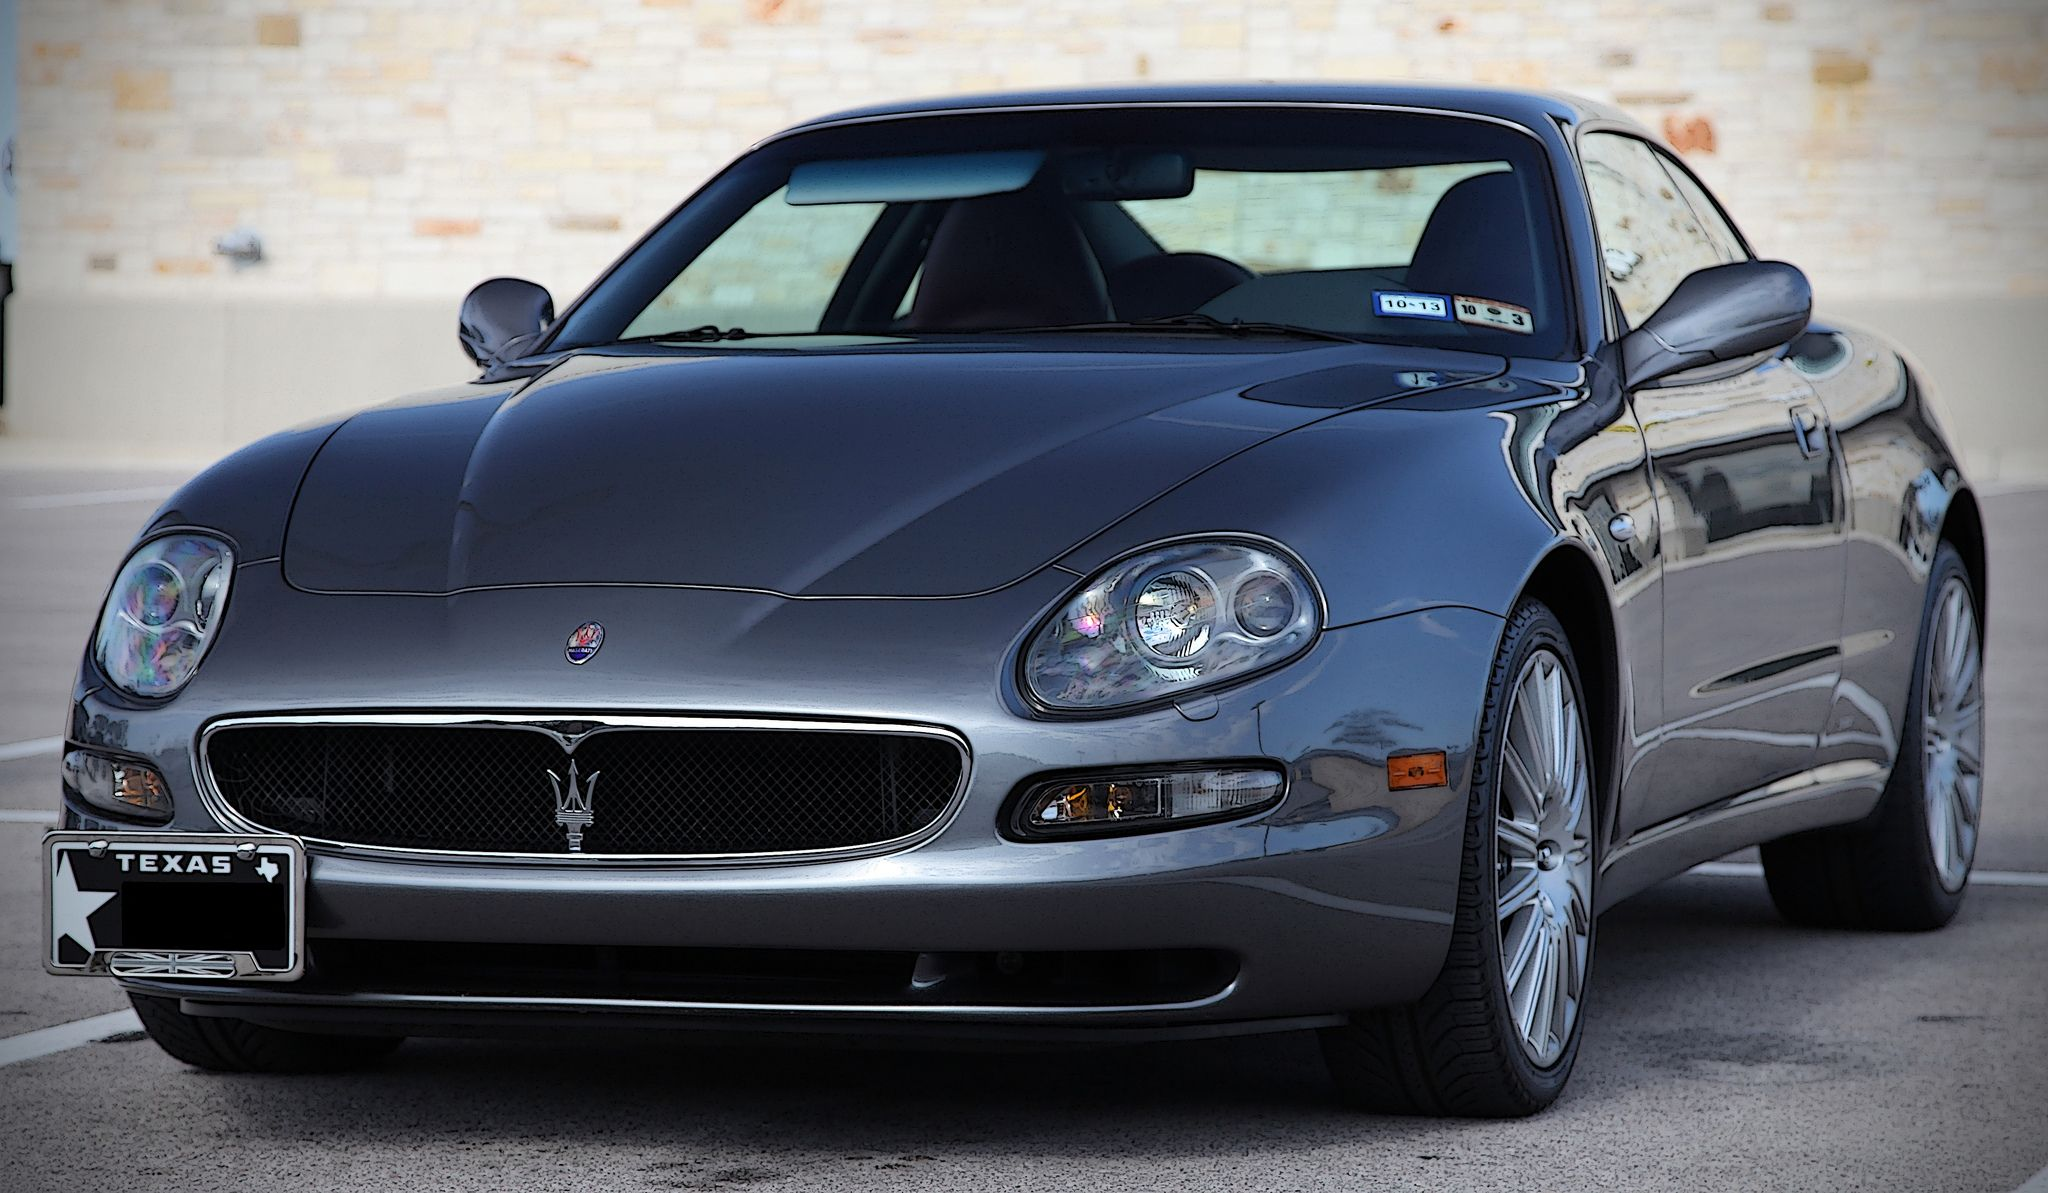 f02f10b41fdd3f304b347f53578faf7b Interesting Info About Maserati Spyder for Sale with Breathtaking Photos Cars Review